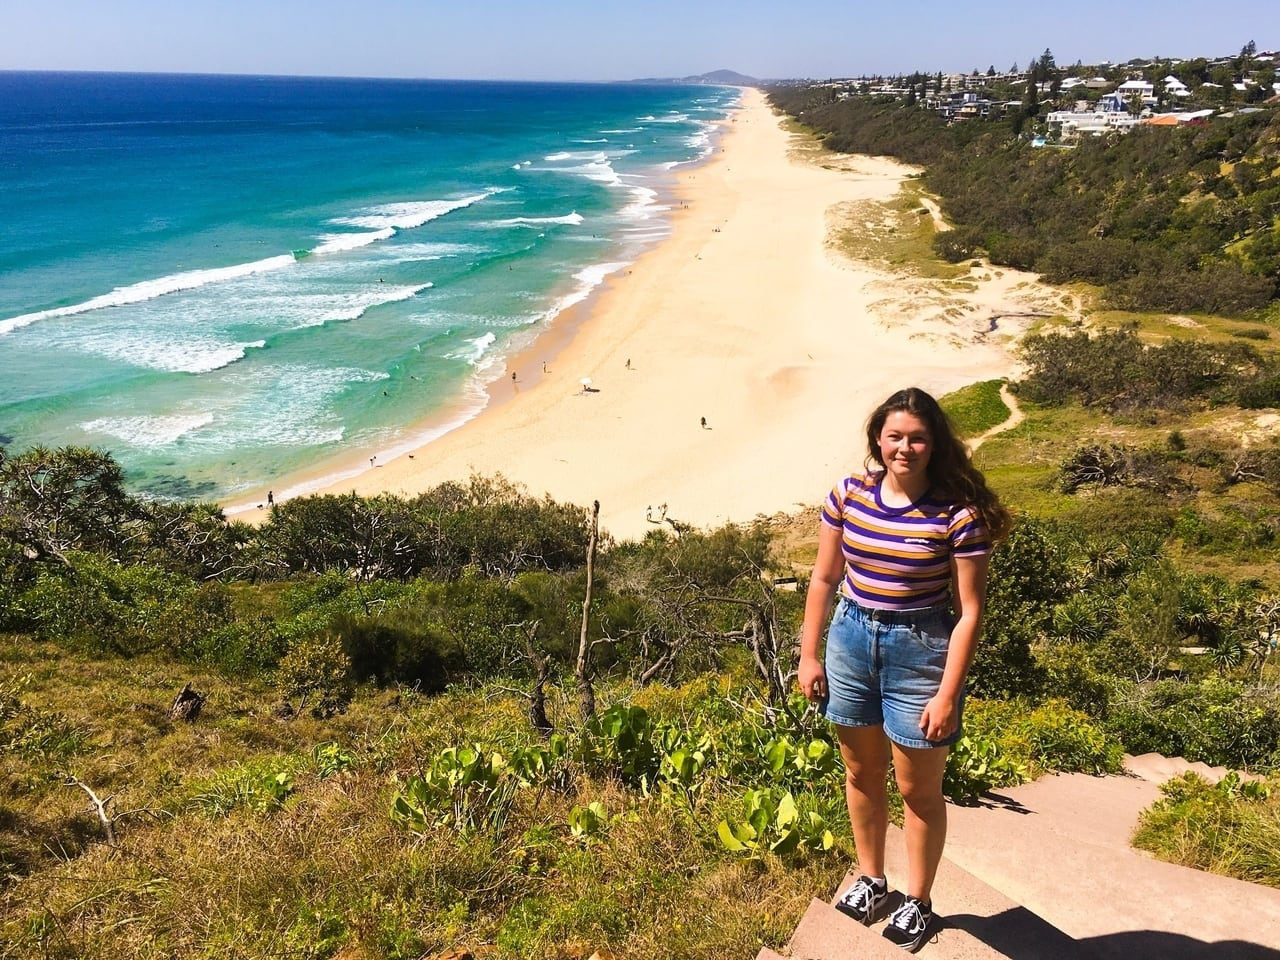 Hiking in Noosa National Park, one of the best things to do in Noosa.